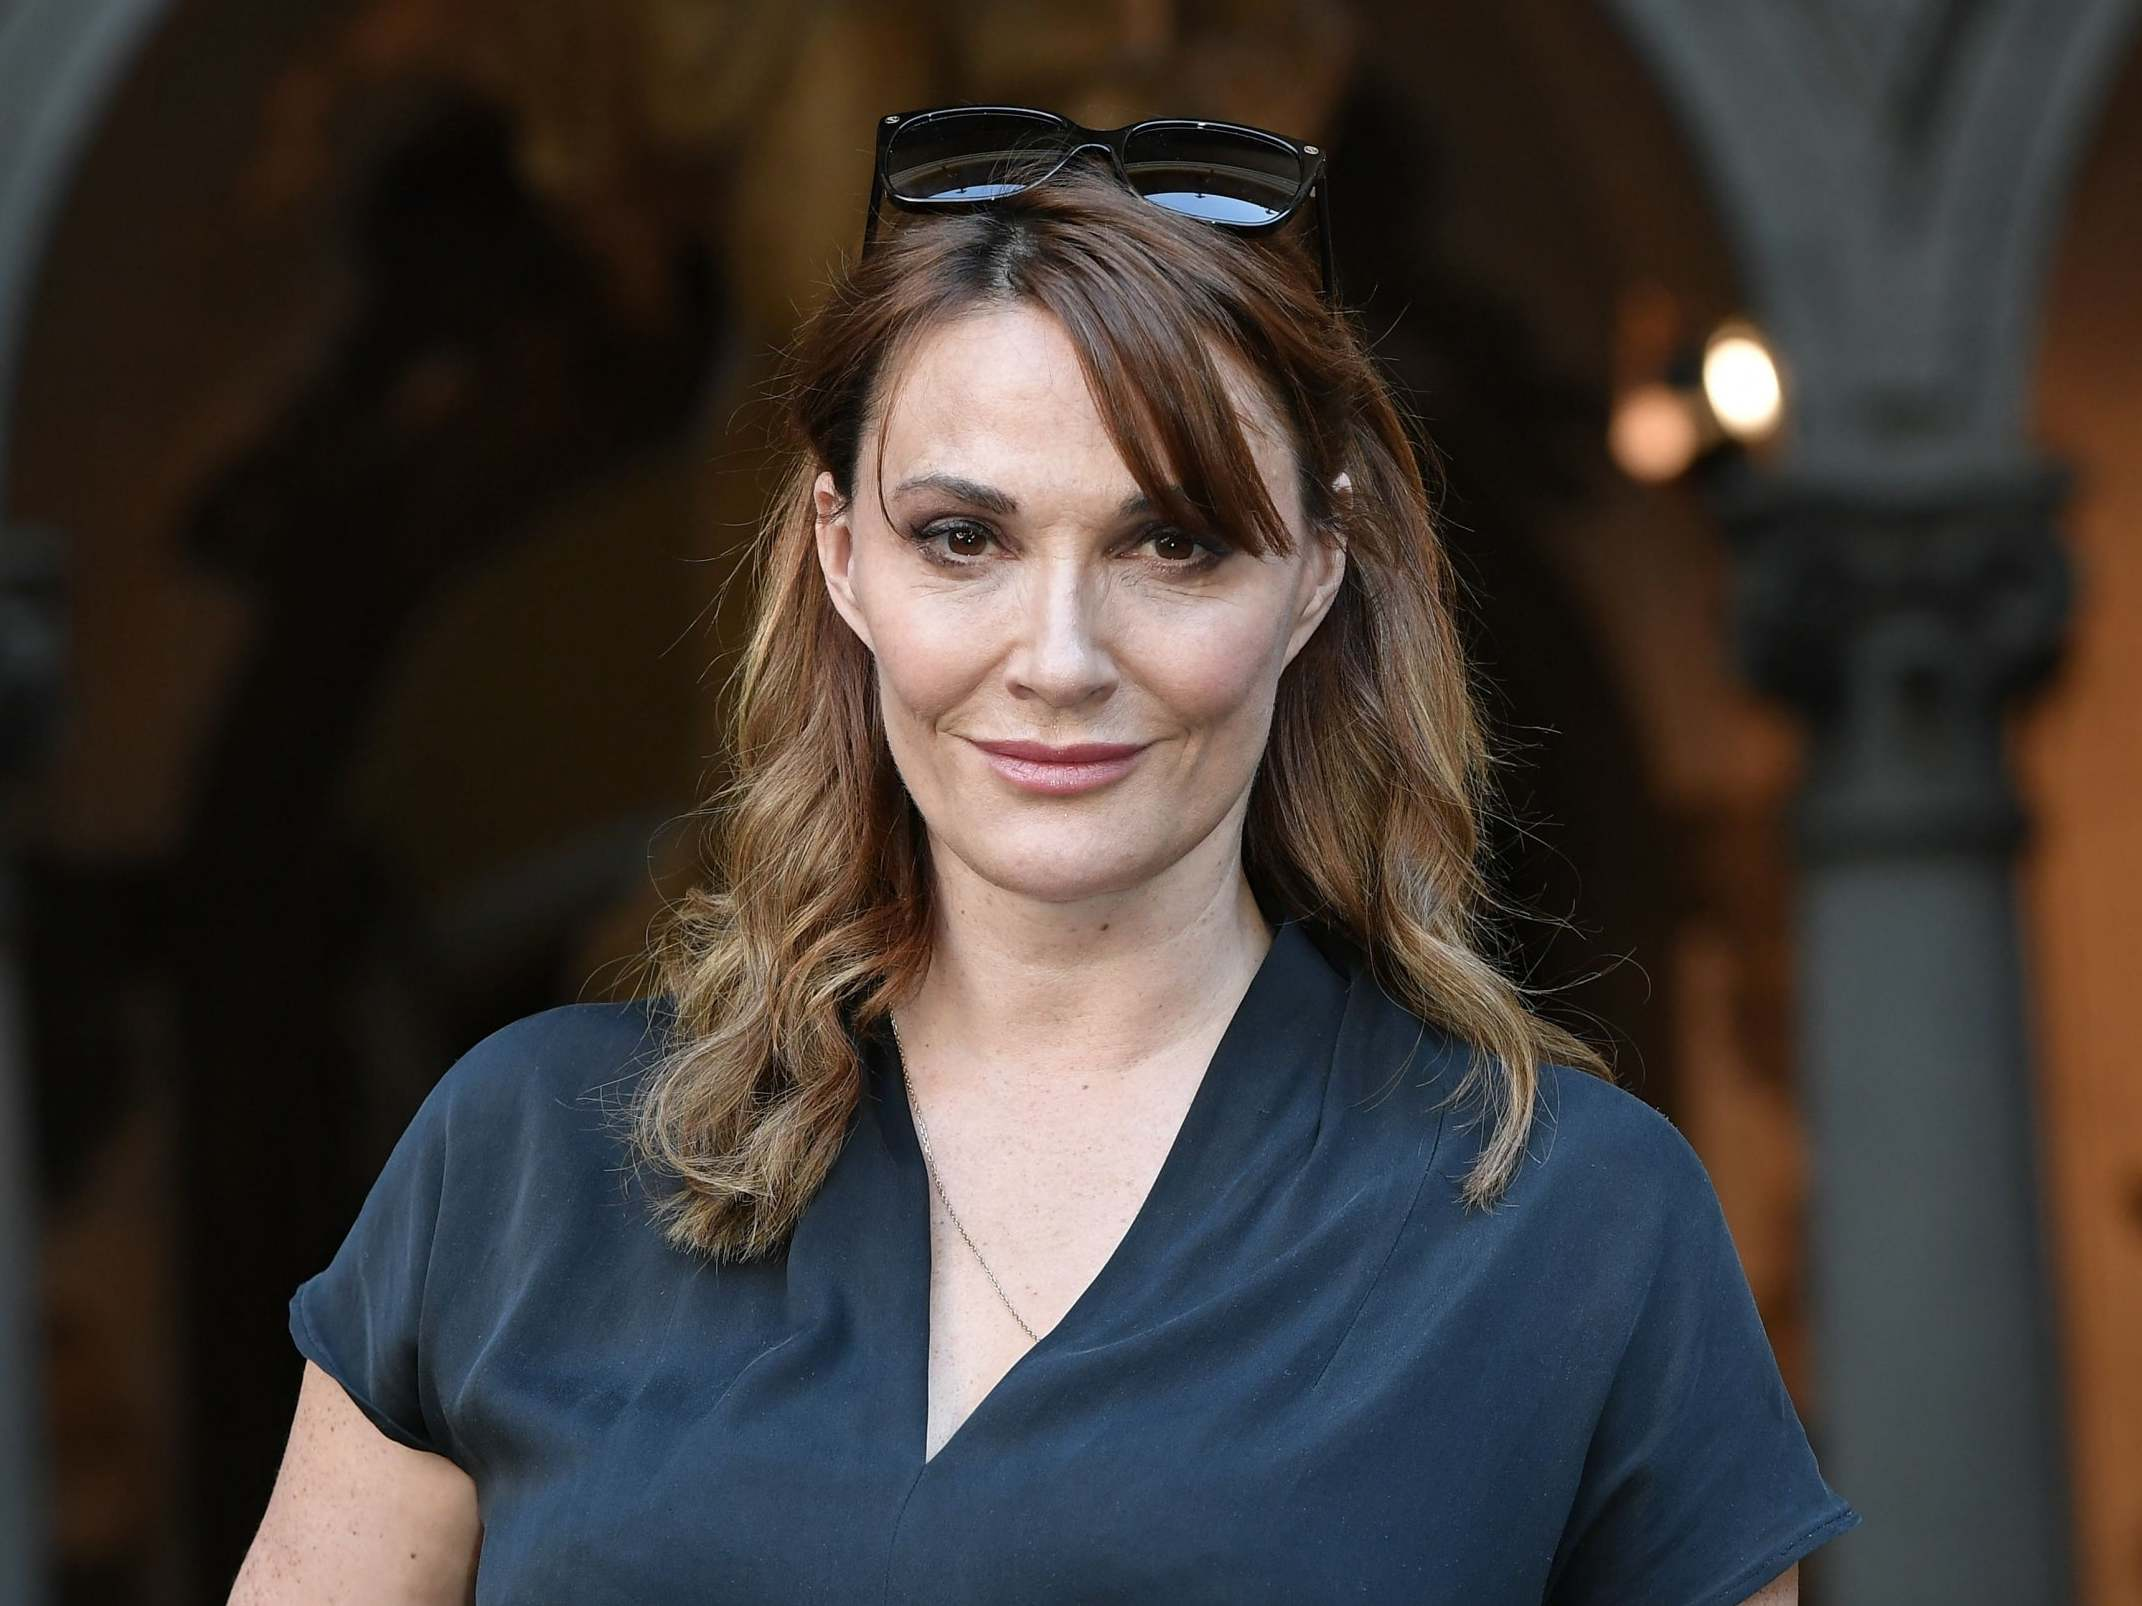 Sarah Parish I Have A Look About Me That Says Death I M Not A Fluffy Bunny The Independent The Independent